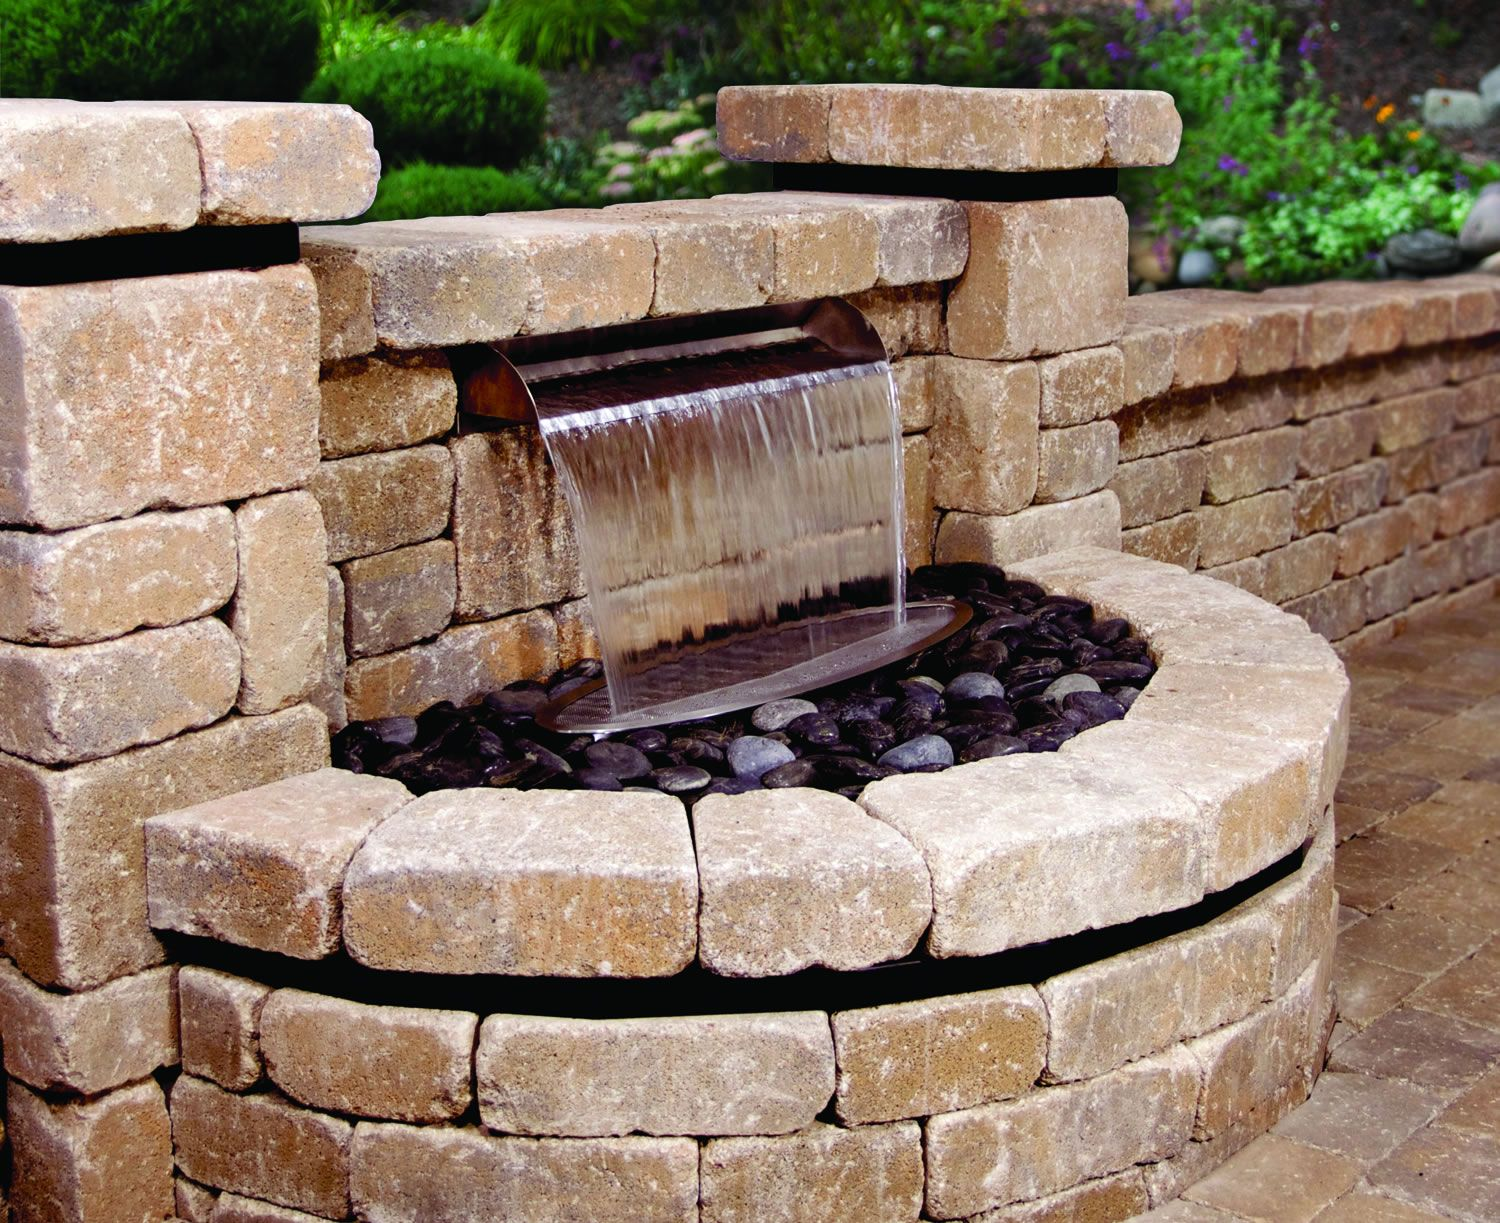 Atlantictm stainless steel scupper water features in